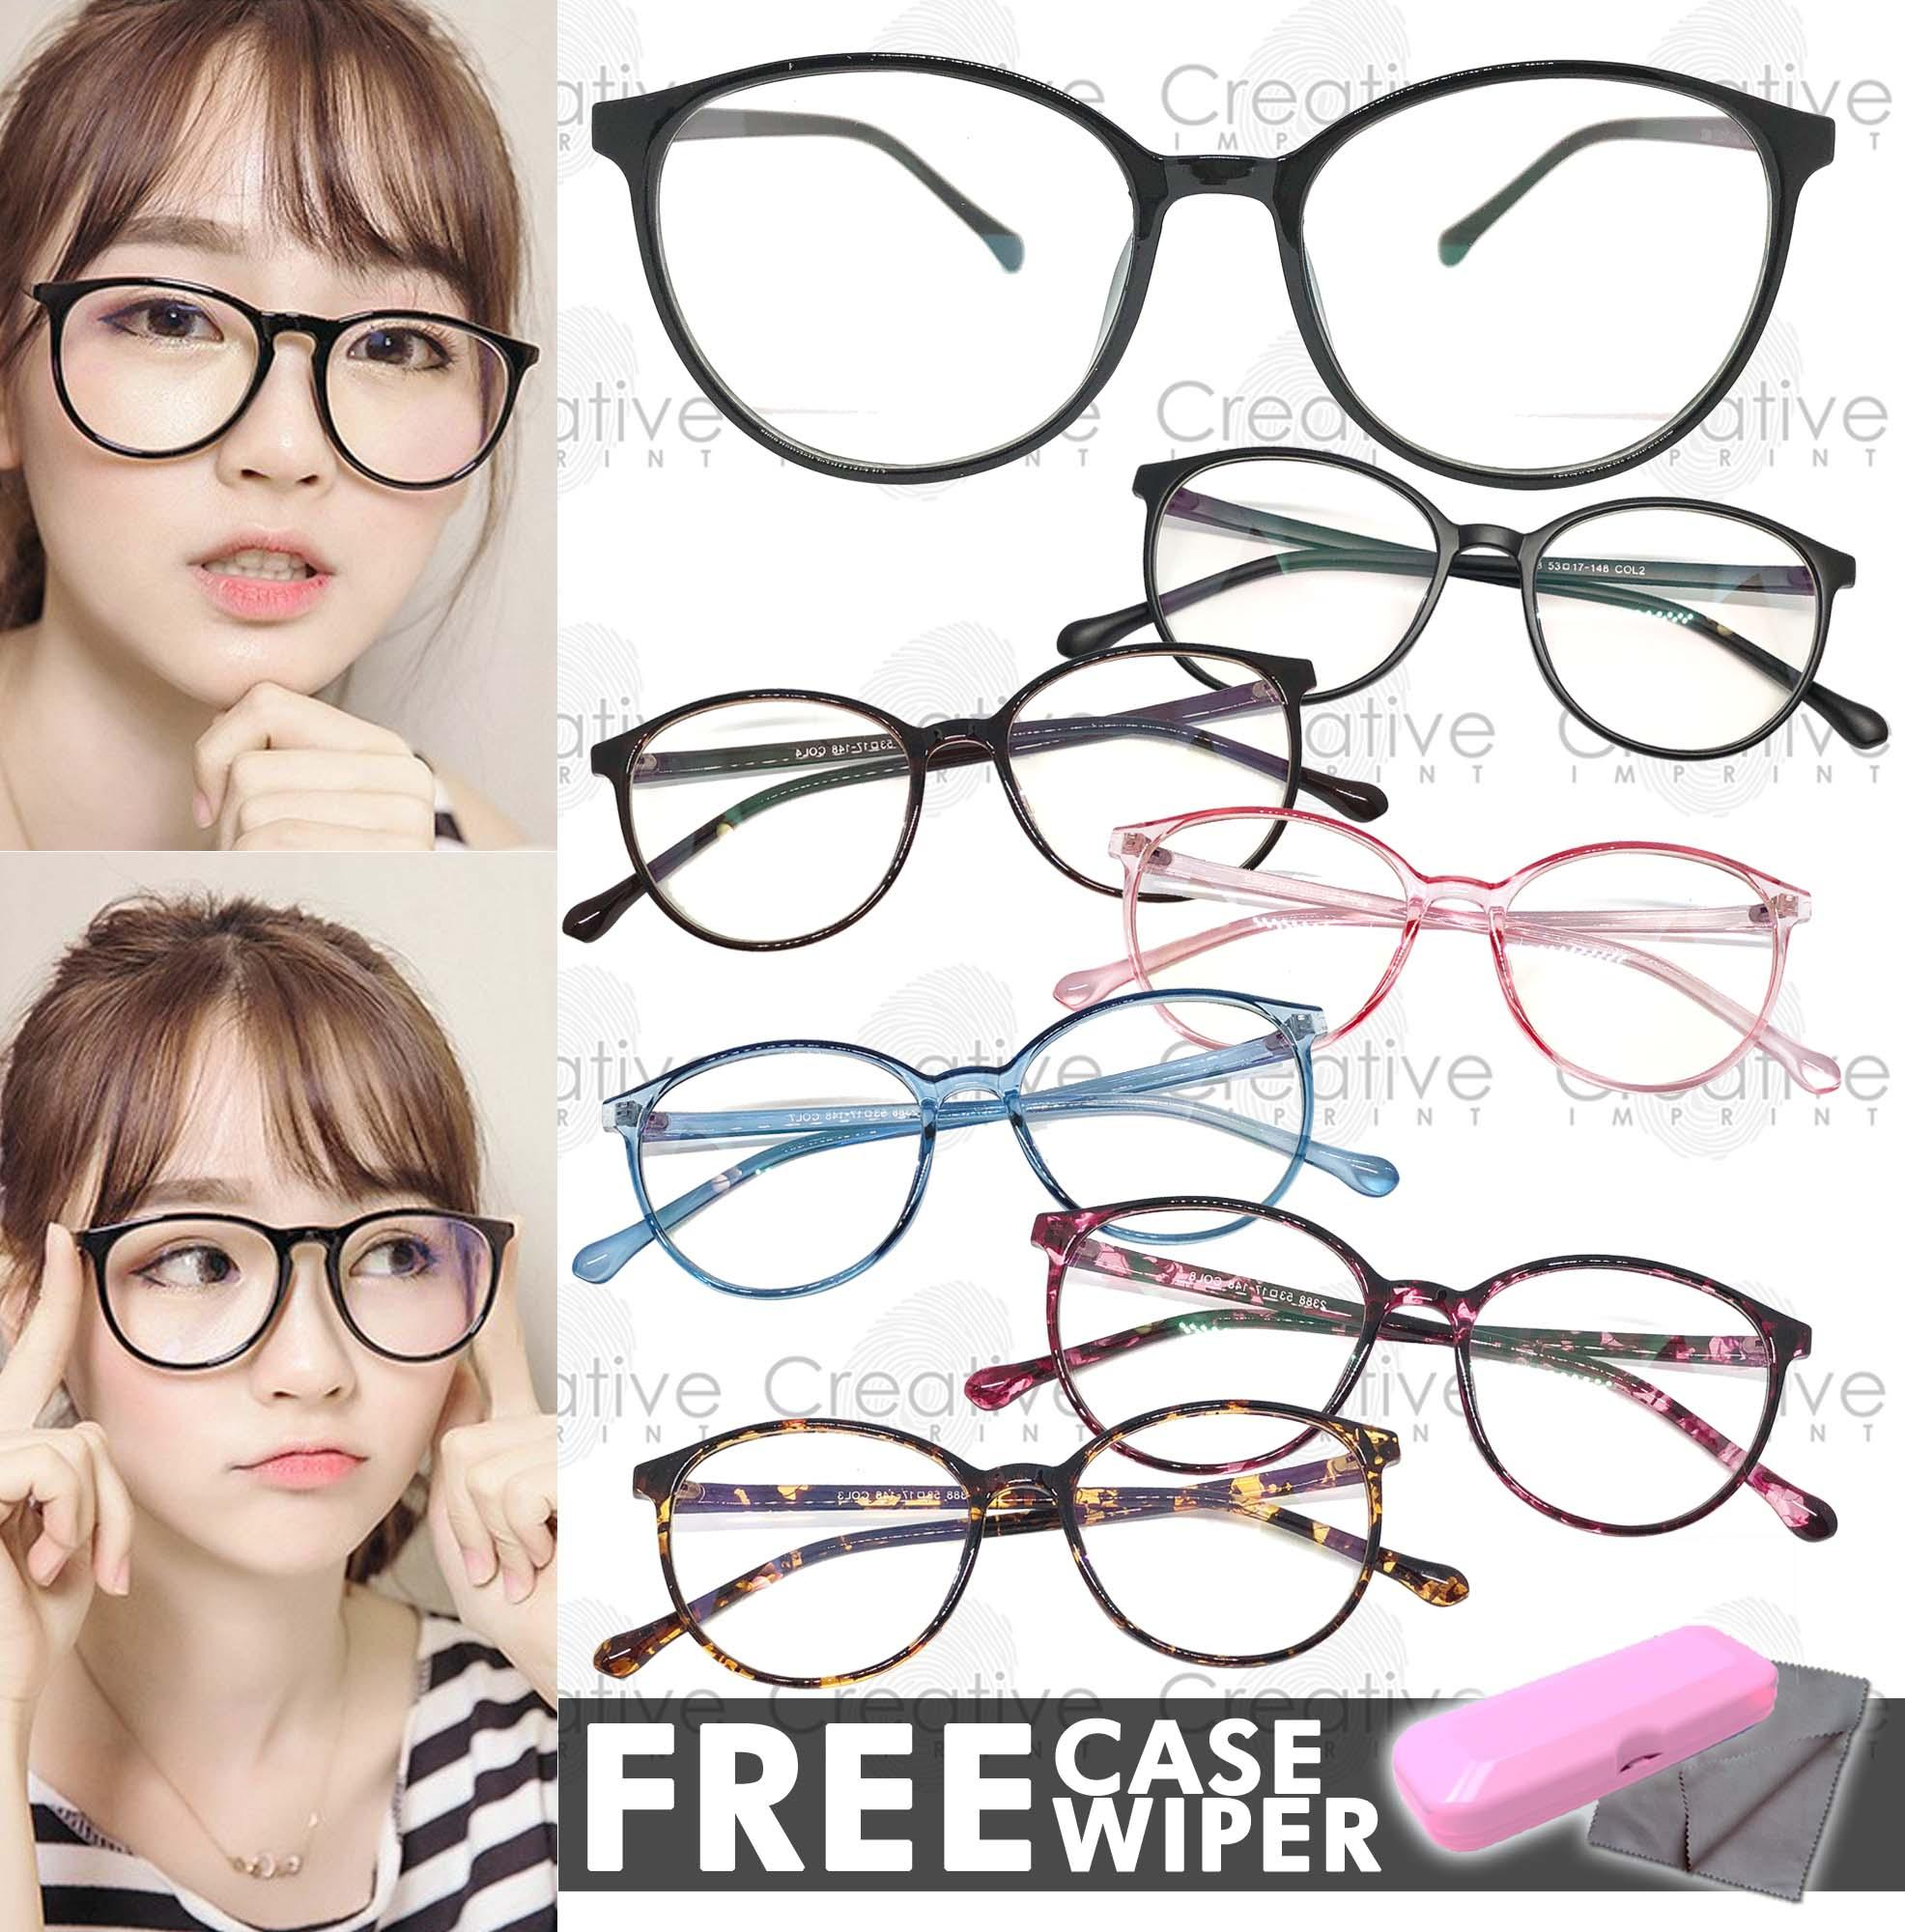 34eb673b0ea8 Creative Imprint Eyeglasses Anti-Radiation Lens Anti-Fatigue Anti-Blue  Light Flexible Computer